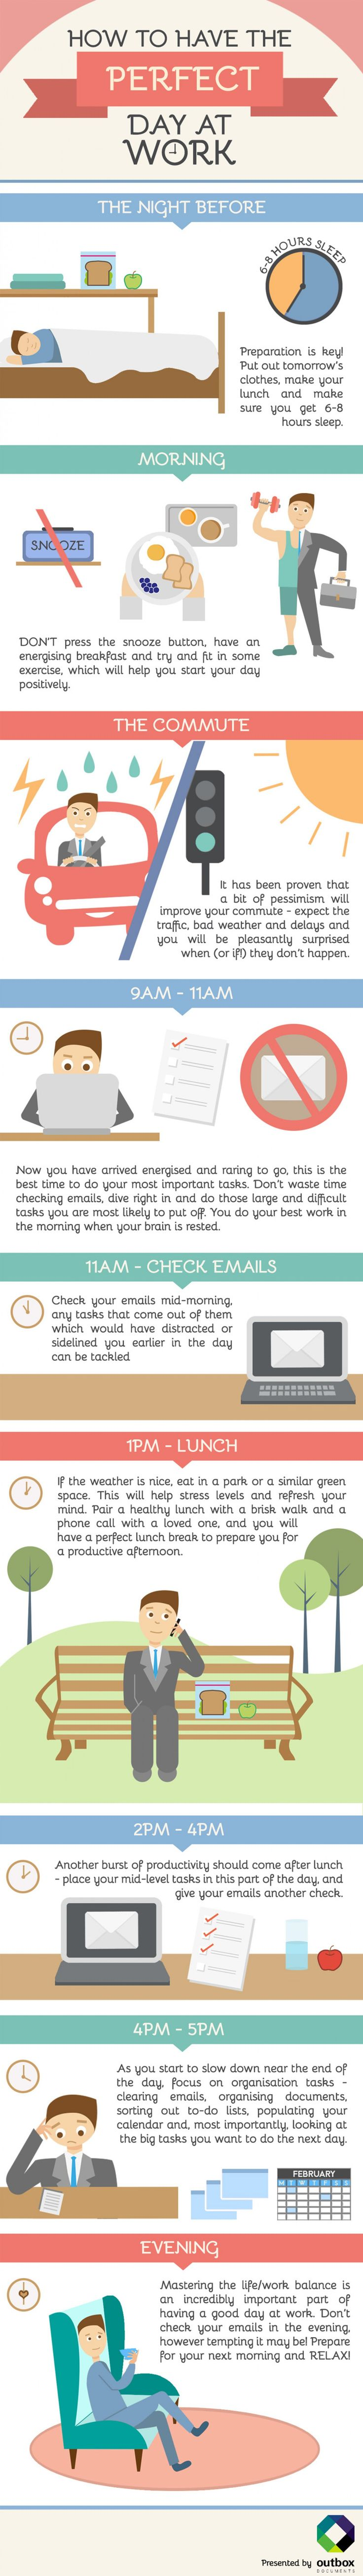 High Quality How To Have The Perfect Day At Work Infographic